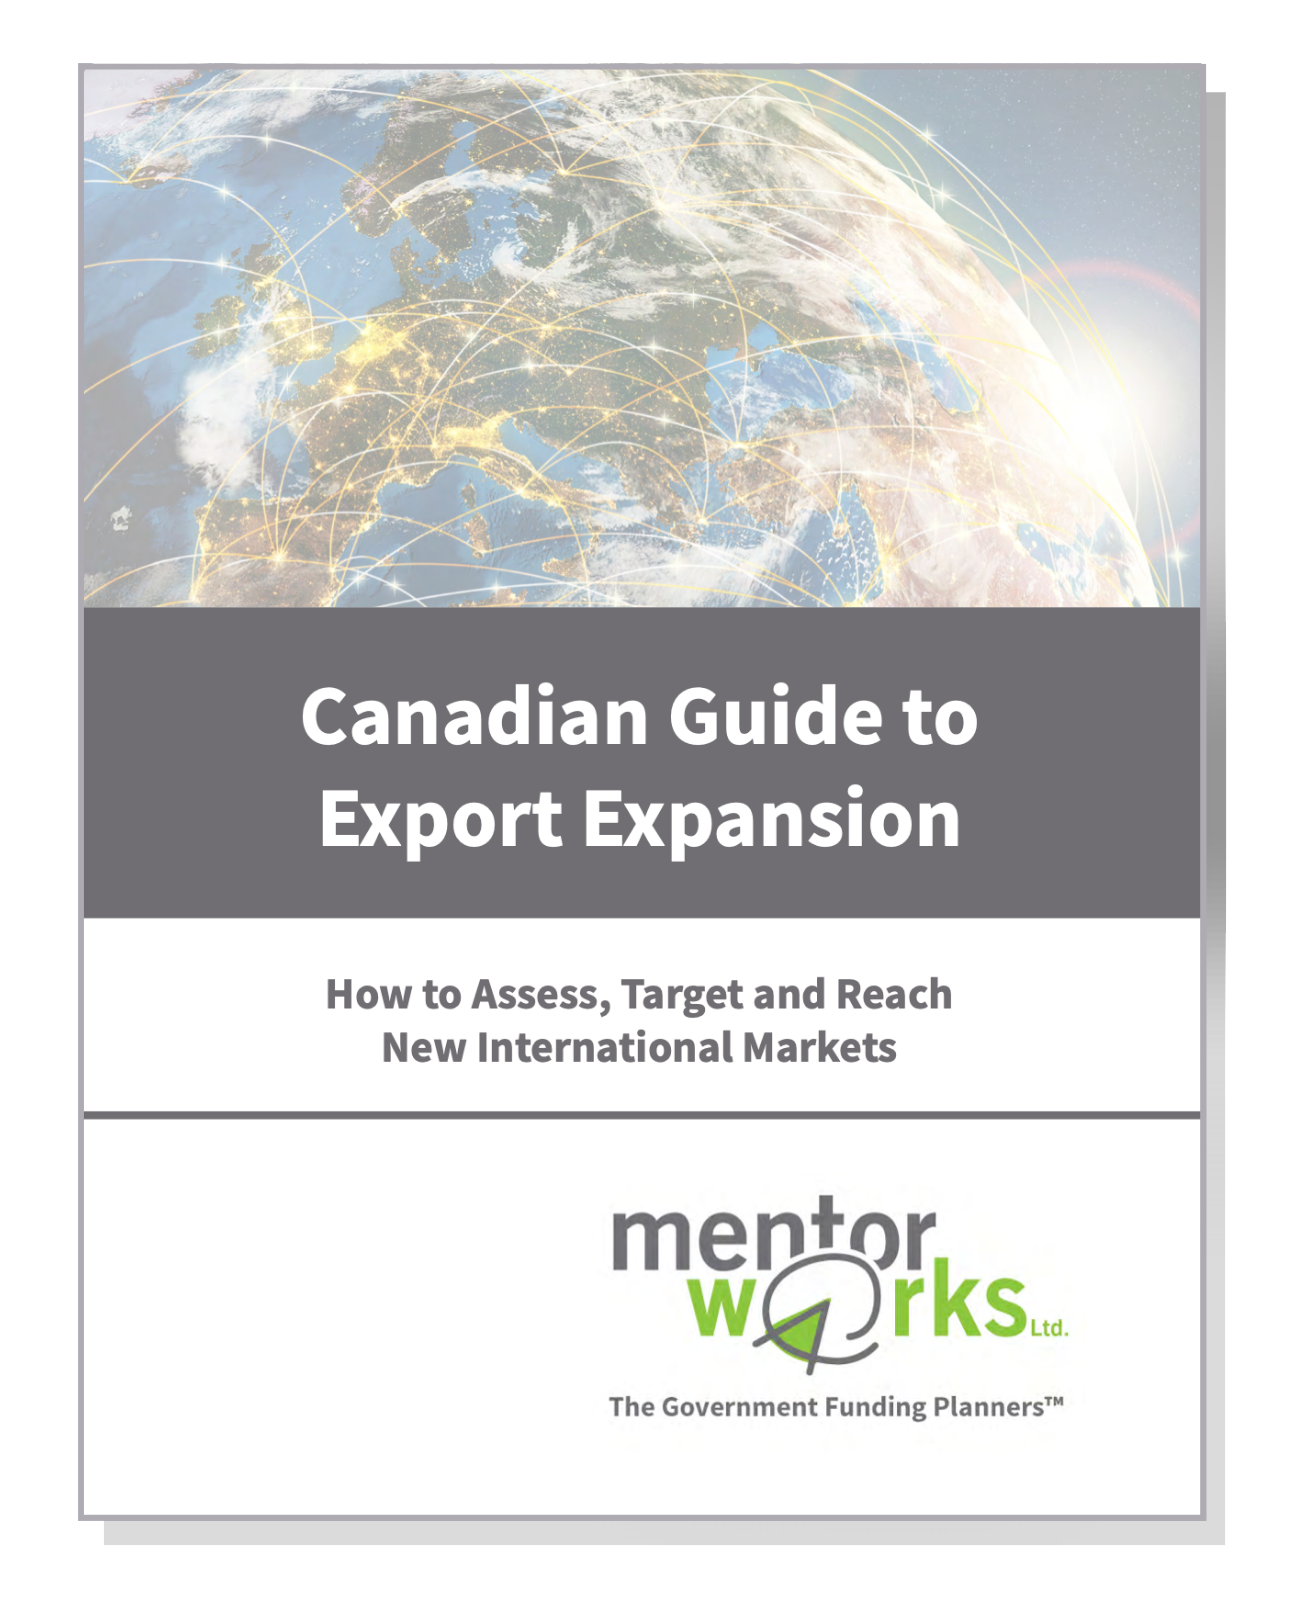 Canadian Guide to Export Expansion Drop Shadow-1